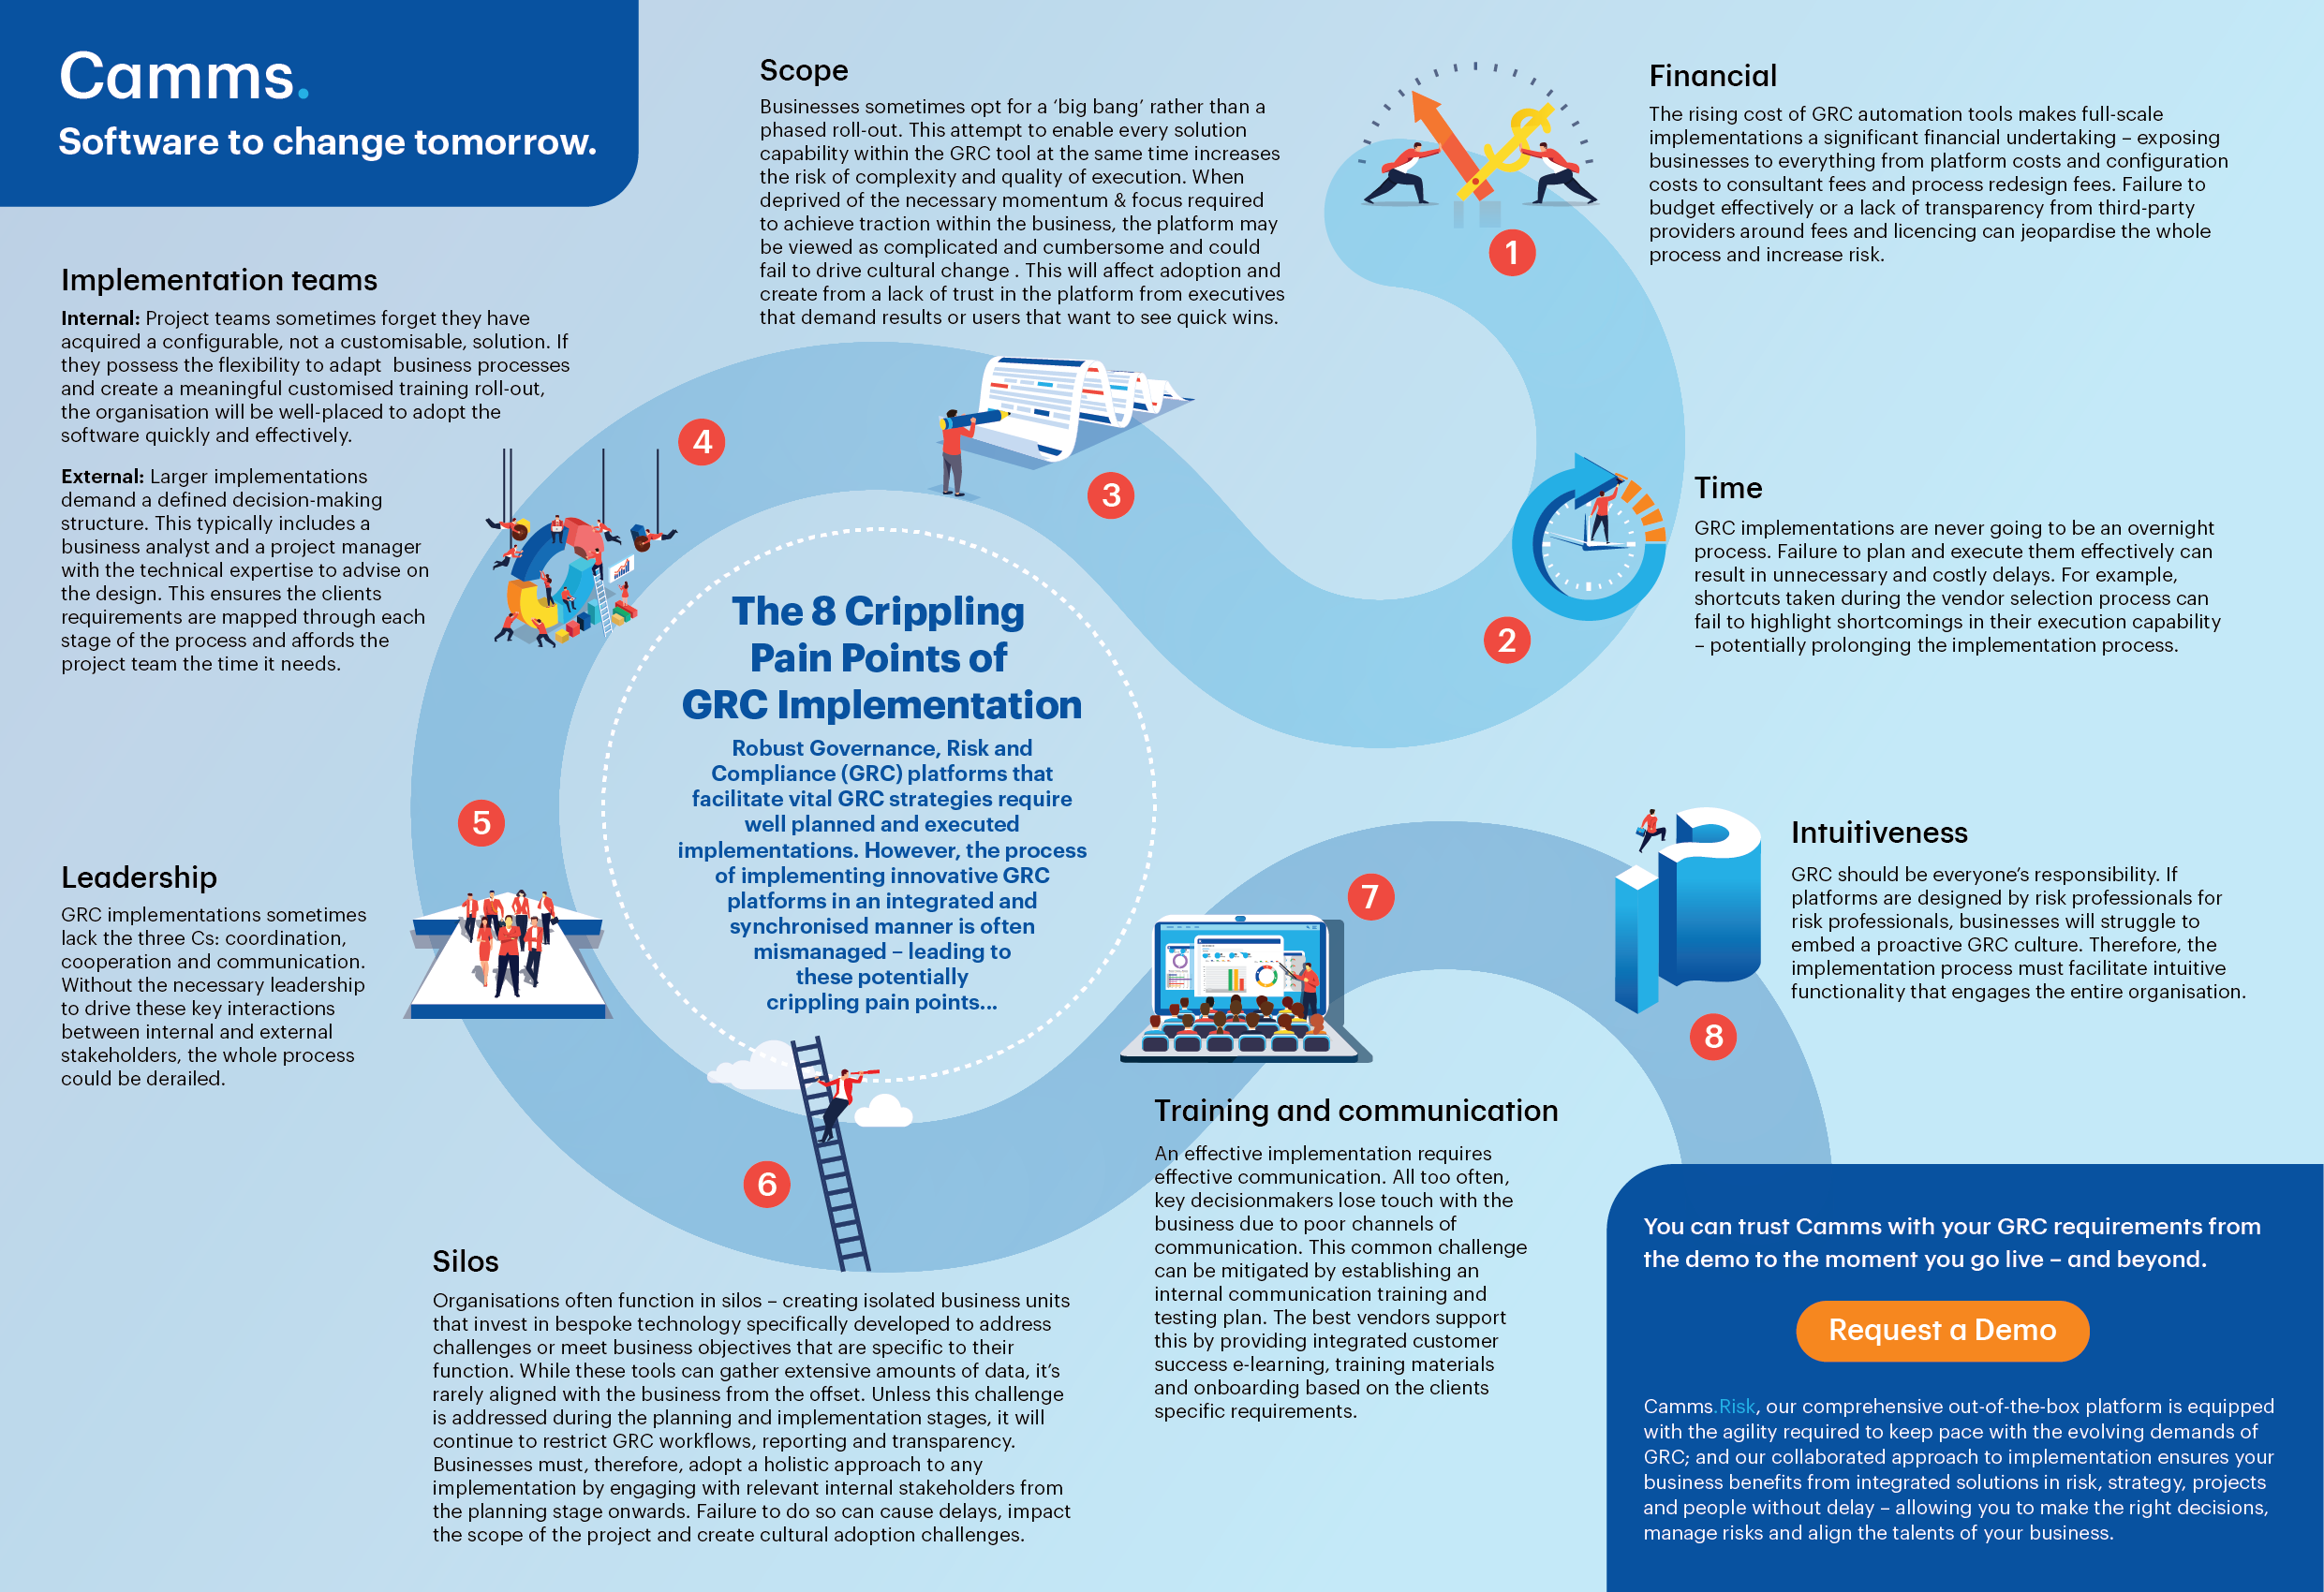 8 Crippling Pain Points of GRC Implementation Infographic - Image